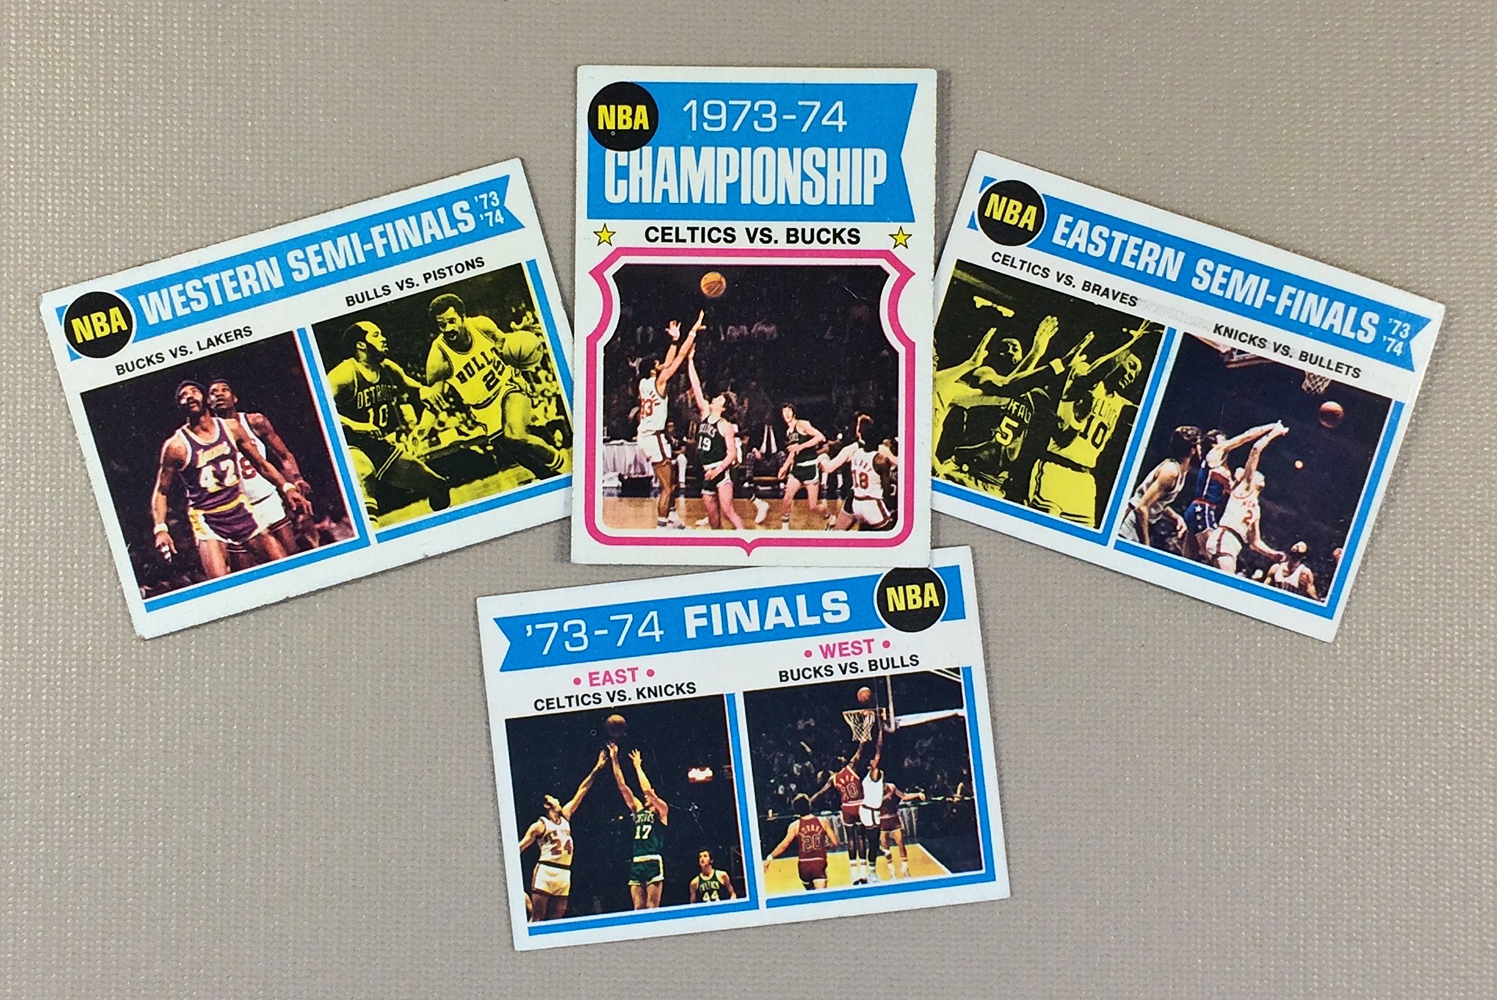 Topps NBA 1973-74 Playoff Collectors Card Set